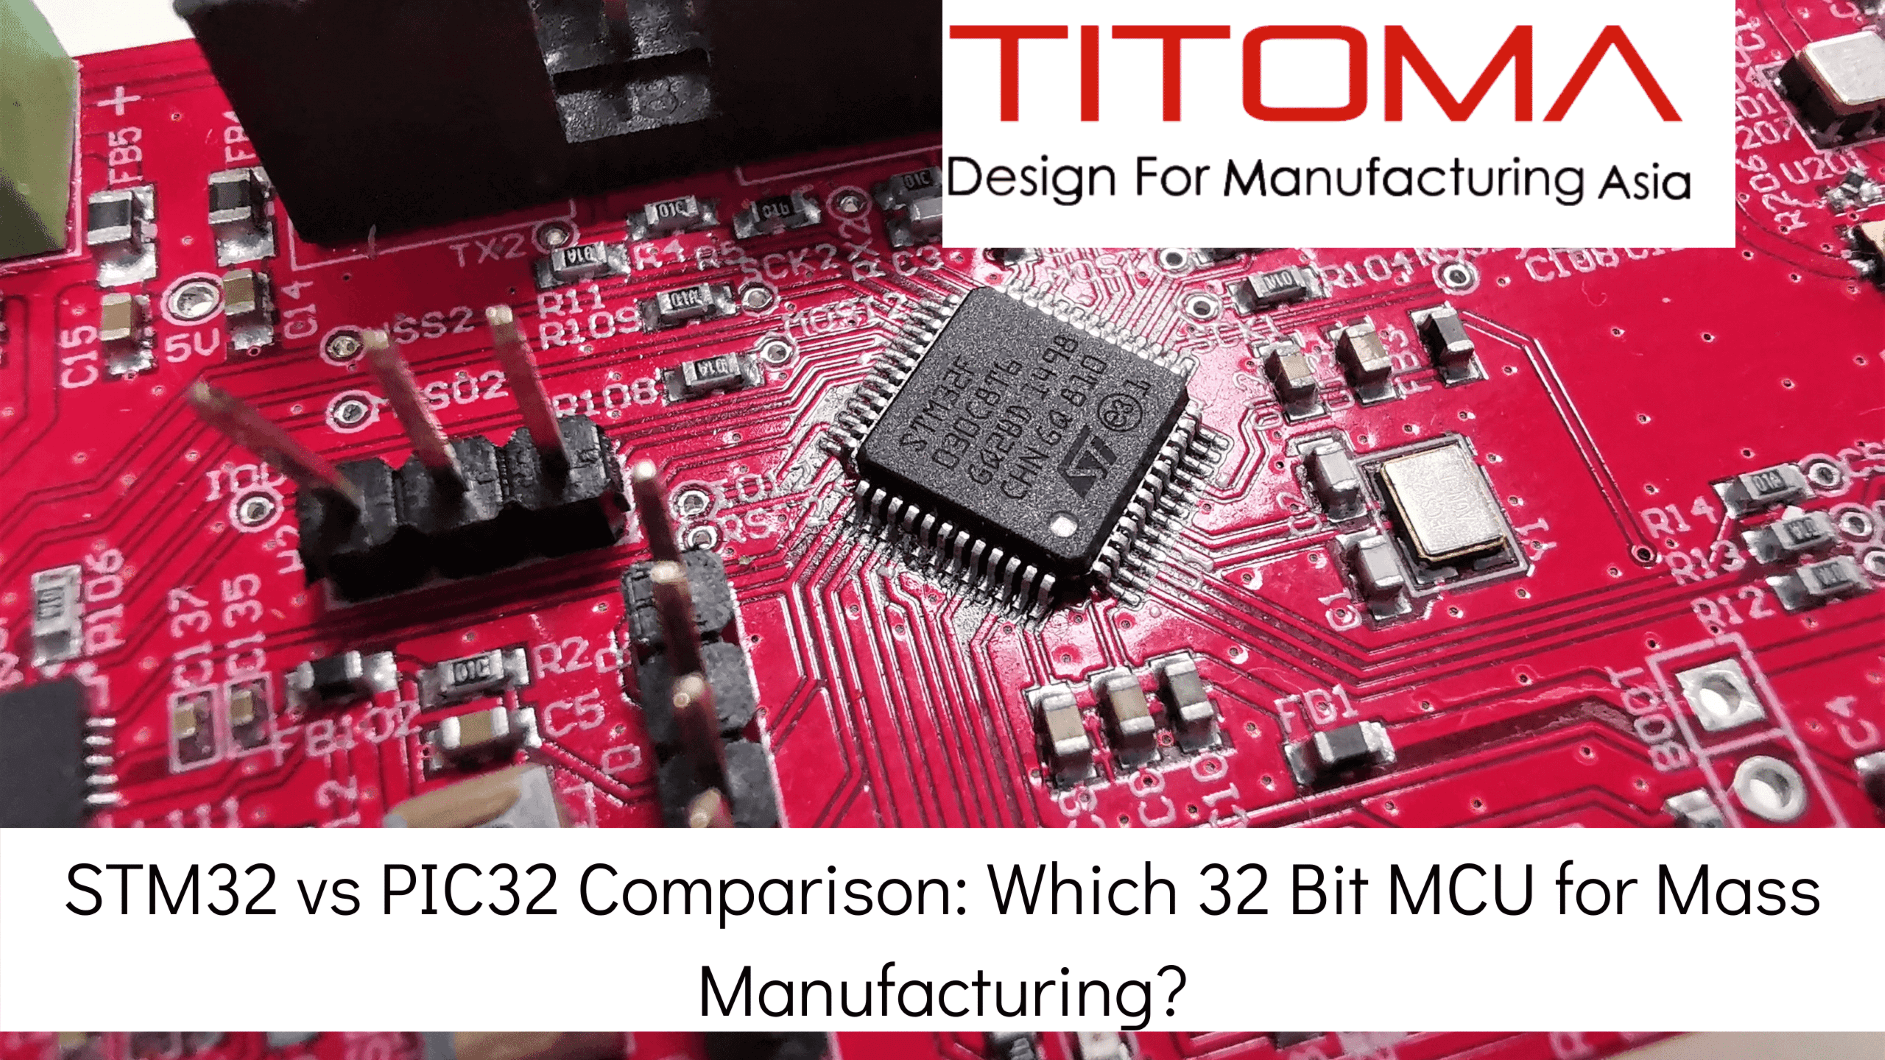 stm32 vs pic32 comparison